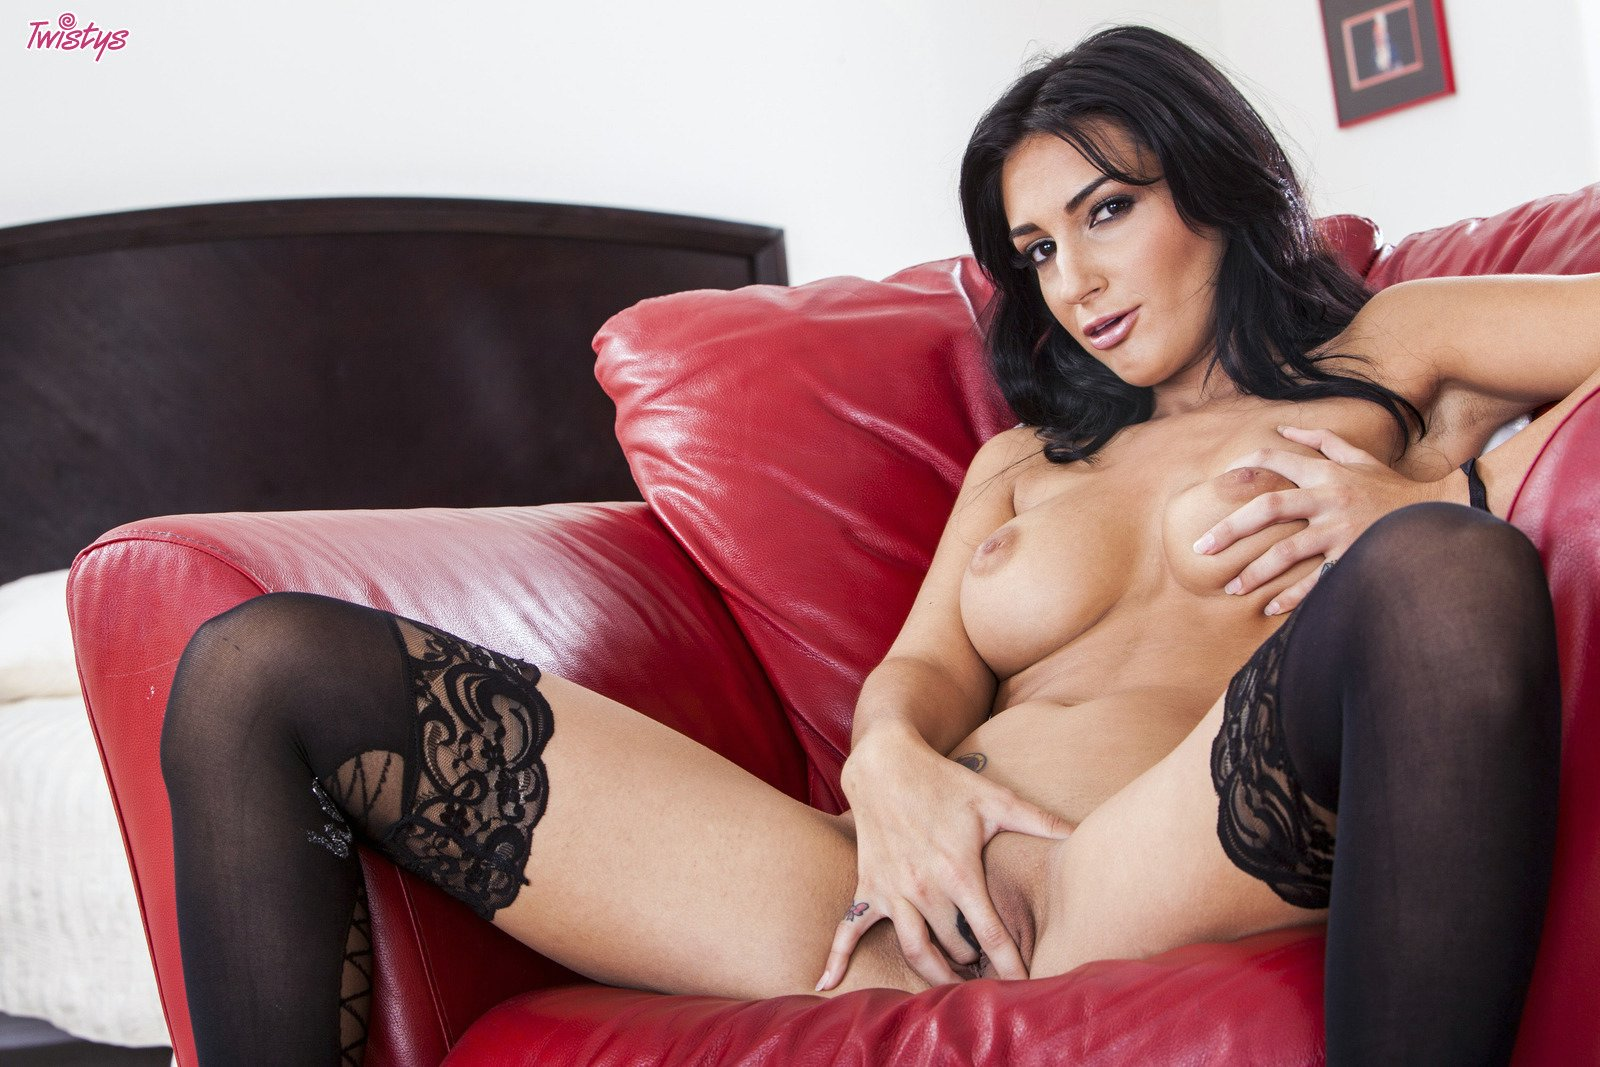 Amber cox twistys personal